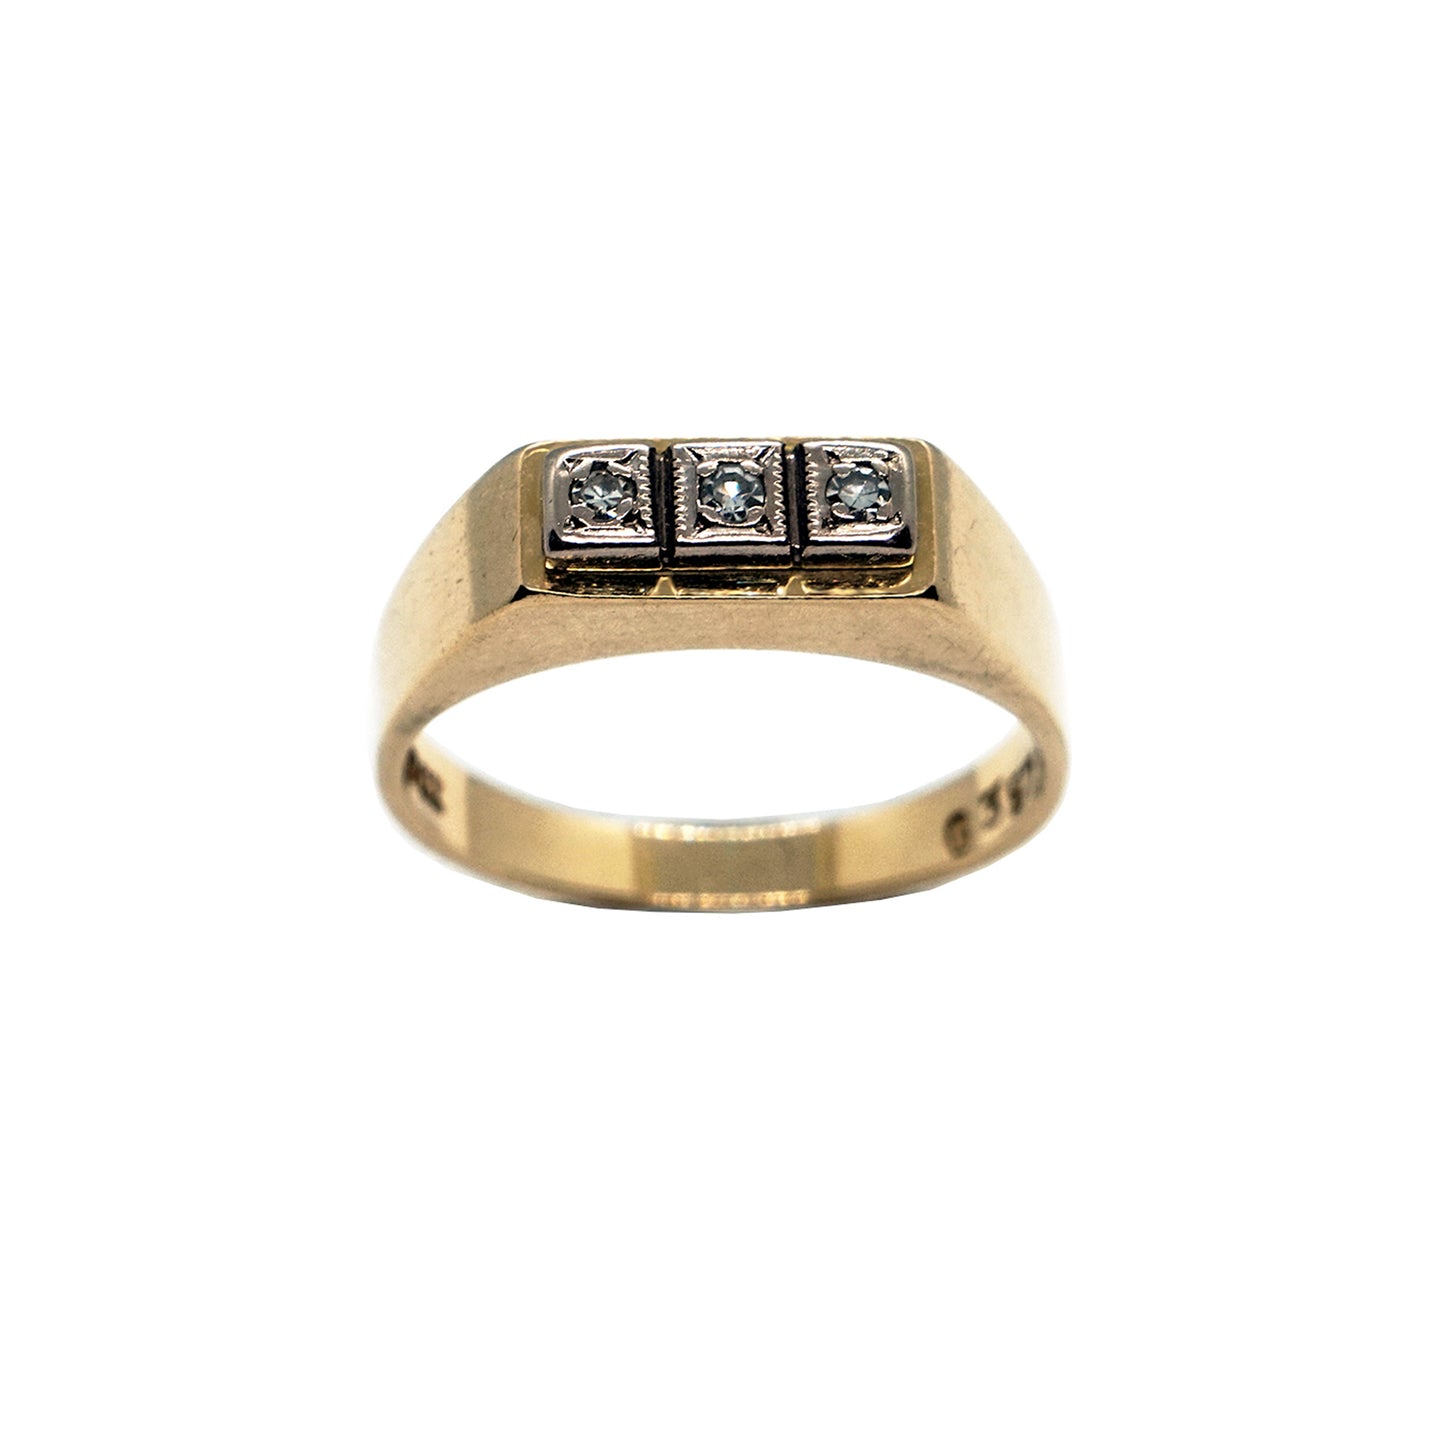 Vintage 18K gold ring, with 3 diamonds set in square silver surround. Hallmarked. White background.